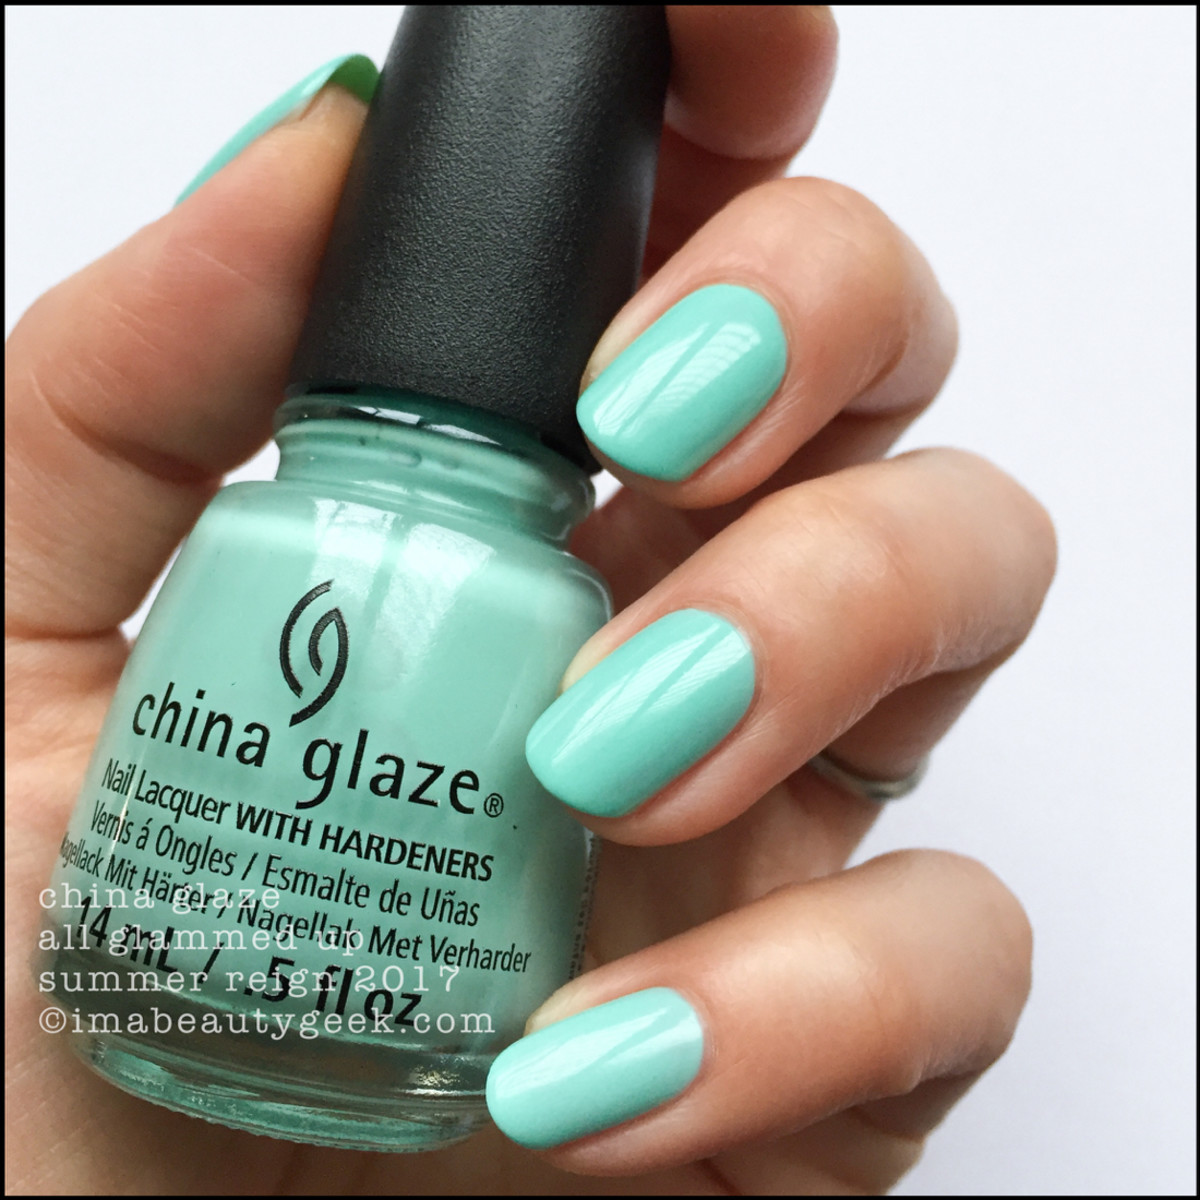 China Glaze All Glammed Up_Summer Reign Collection Swatches